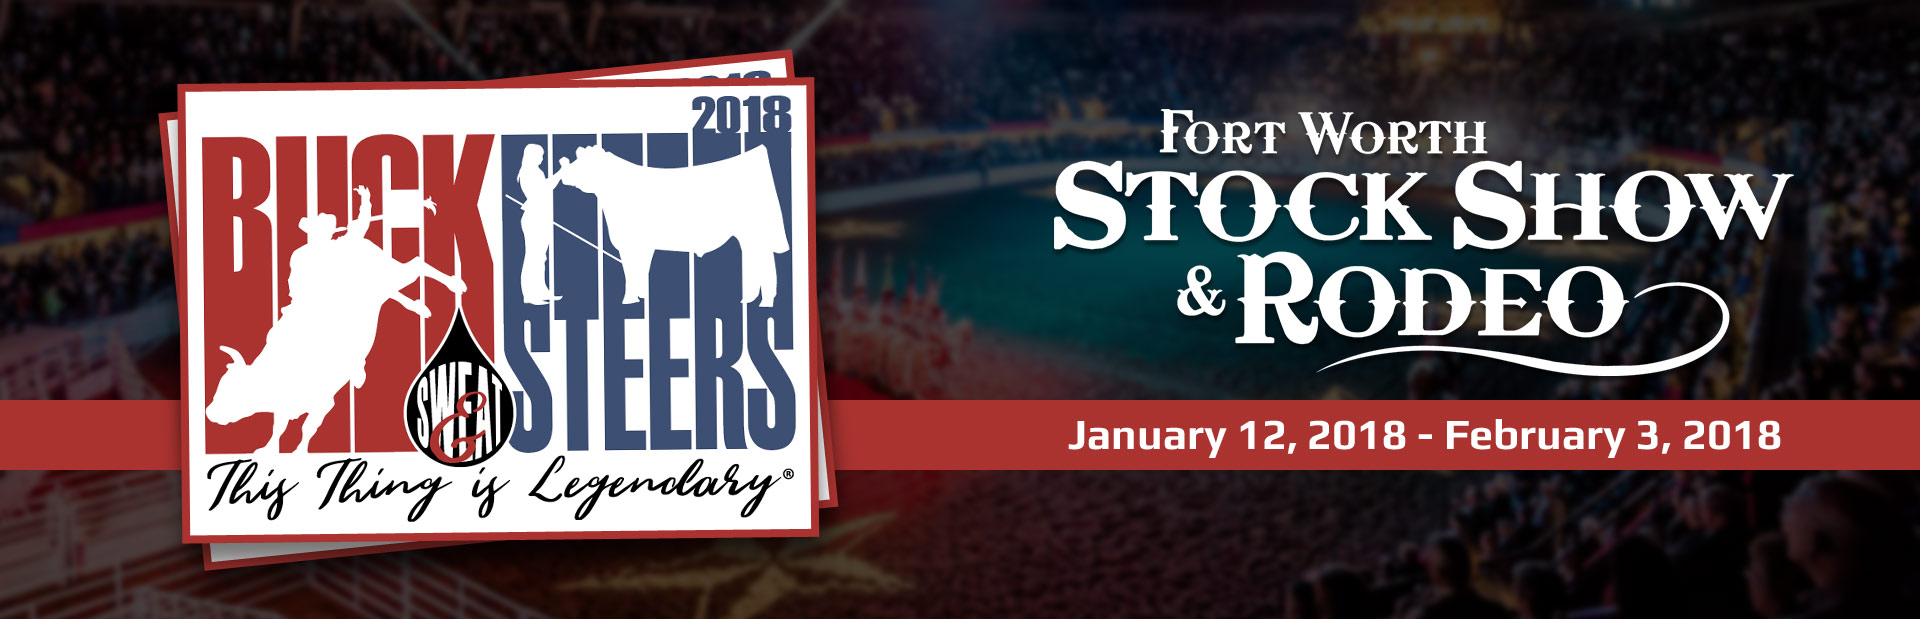 Join us at the Fort Worth Stock Show & Rodeo January 12 through February 3! Click here for details.